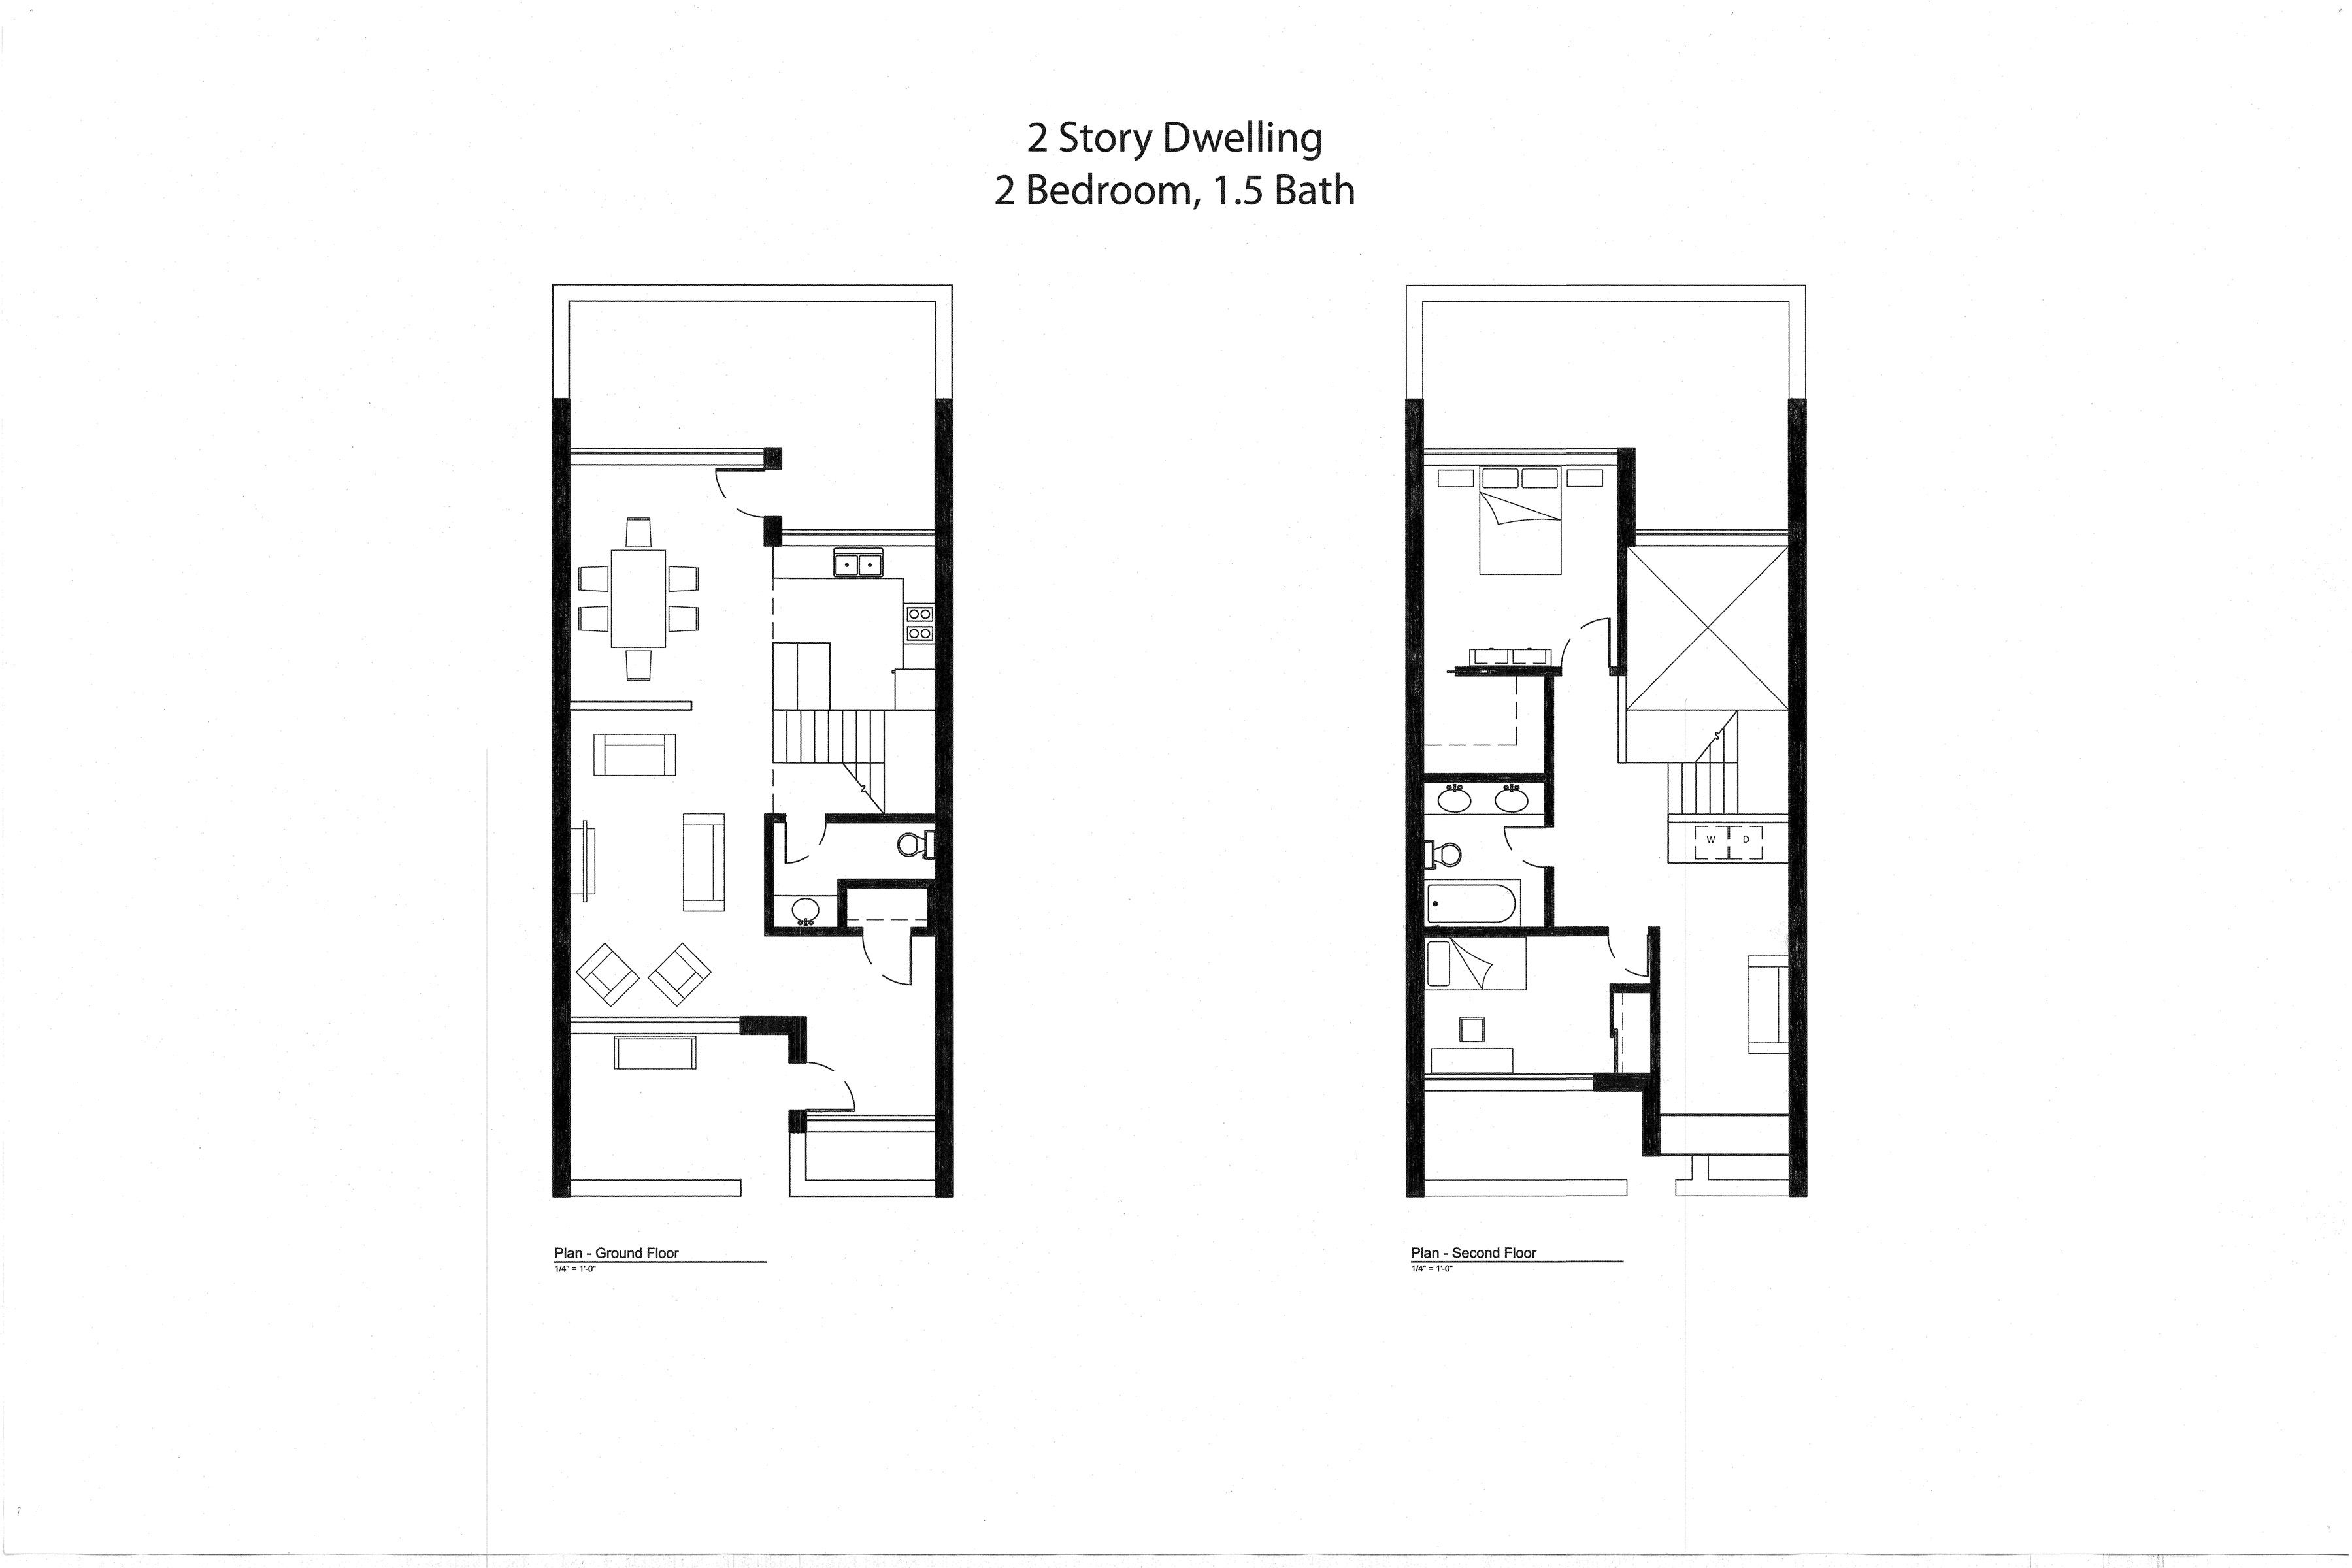 Ground Floor House Plans 500 Sq Ft House Plans Small Farmhouse Plans House Floor Plans